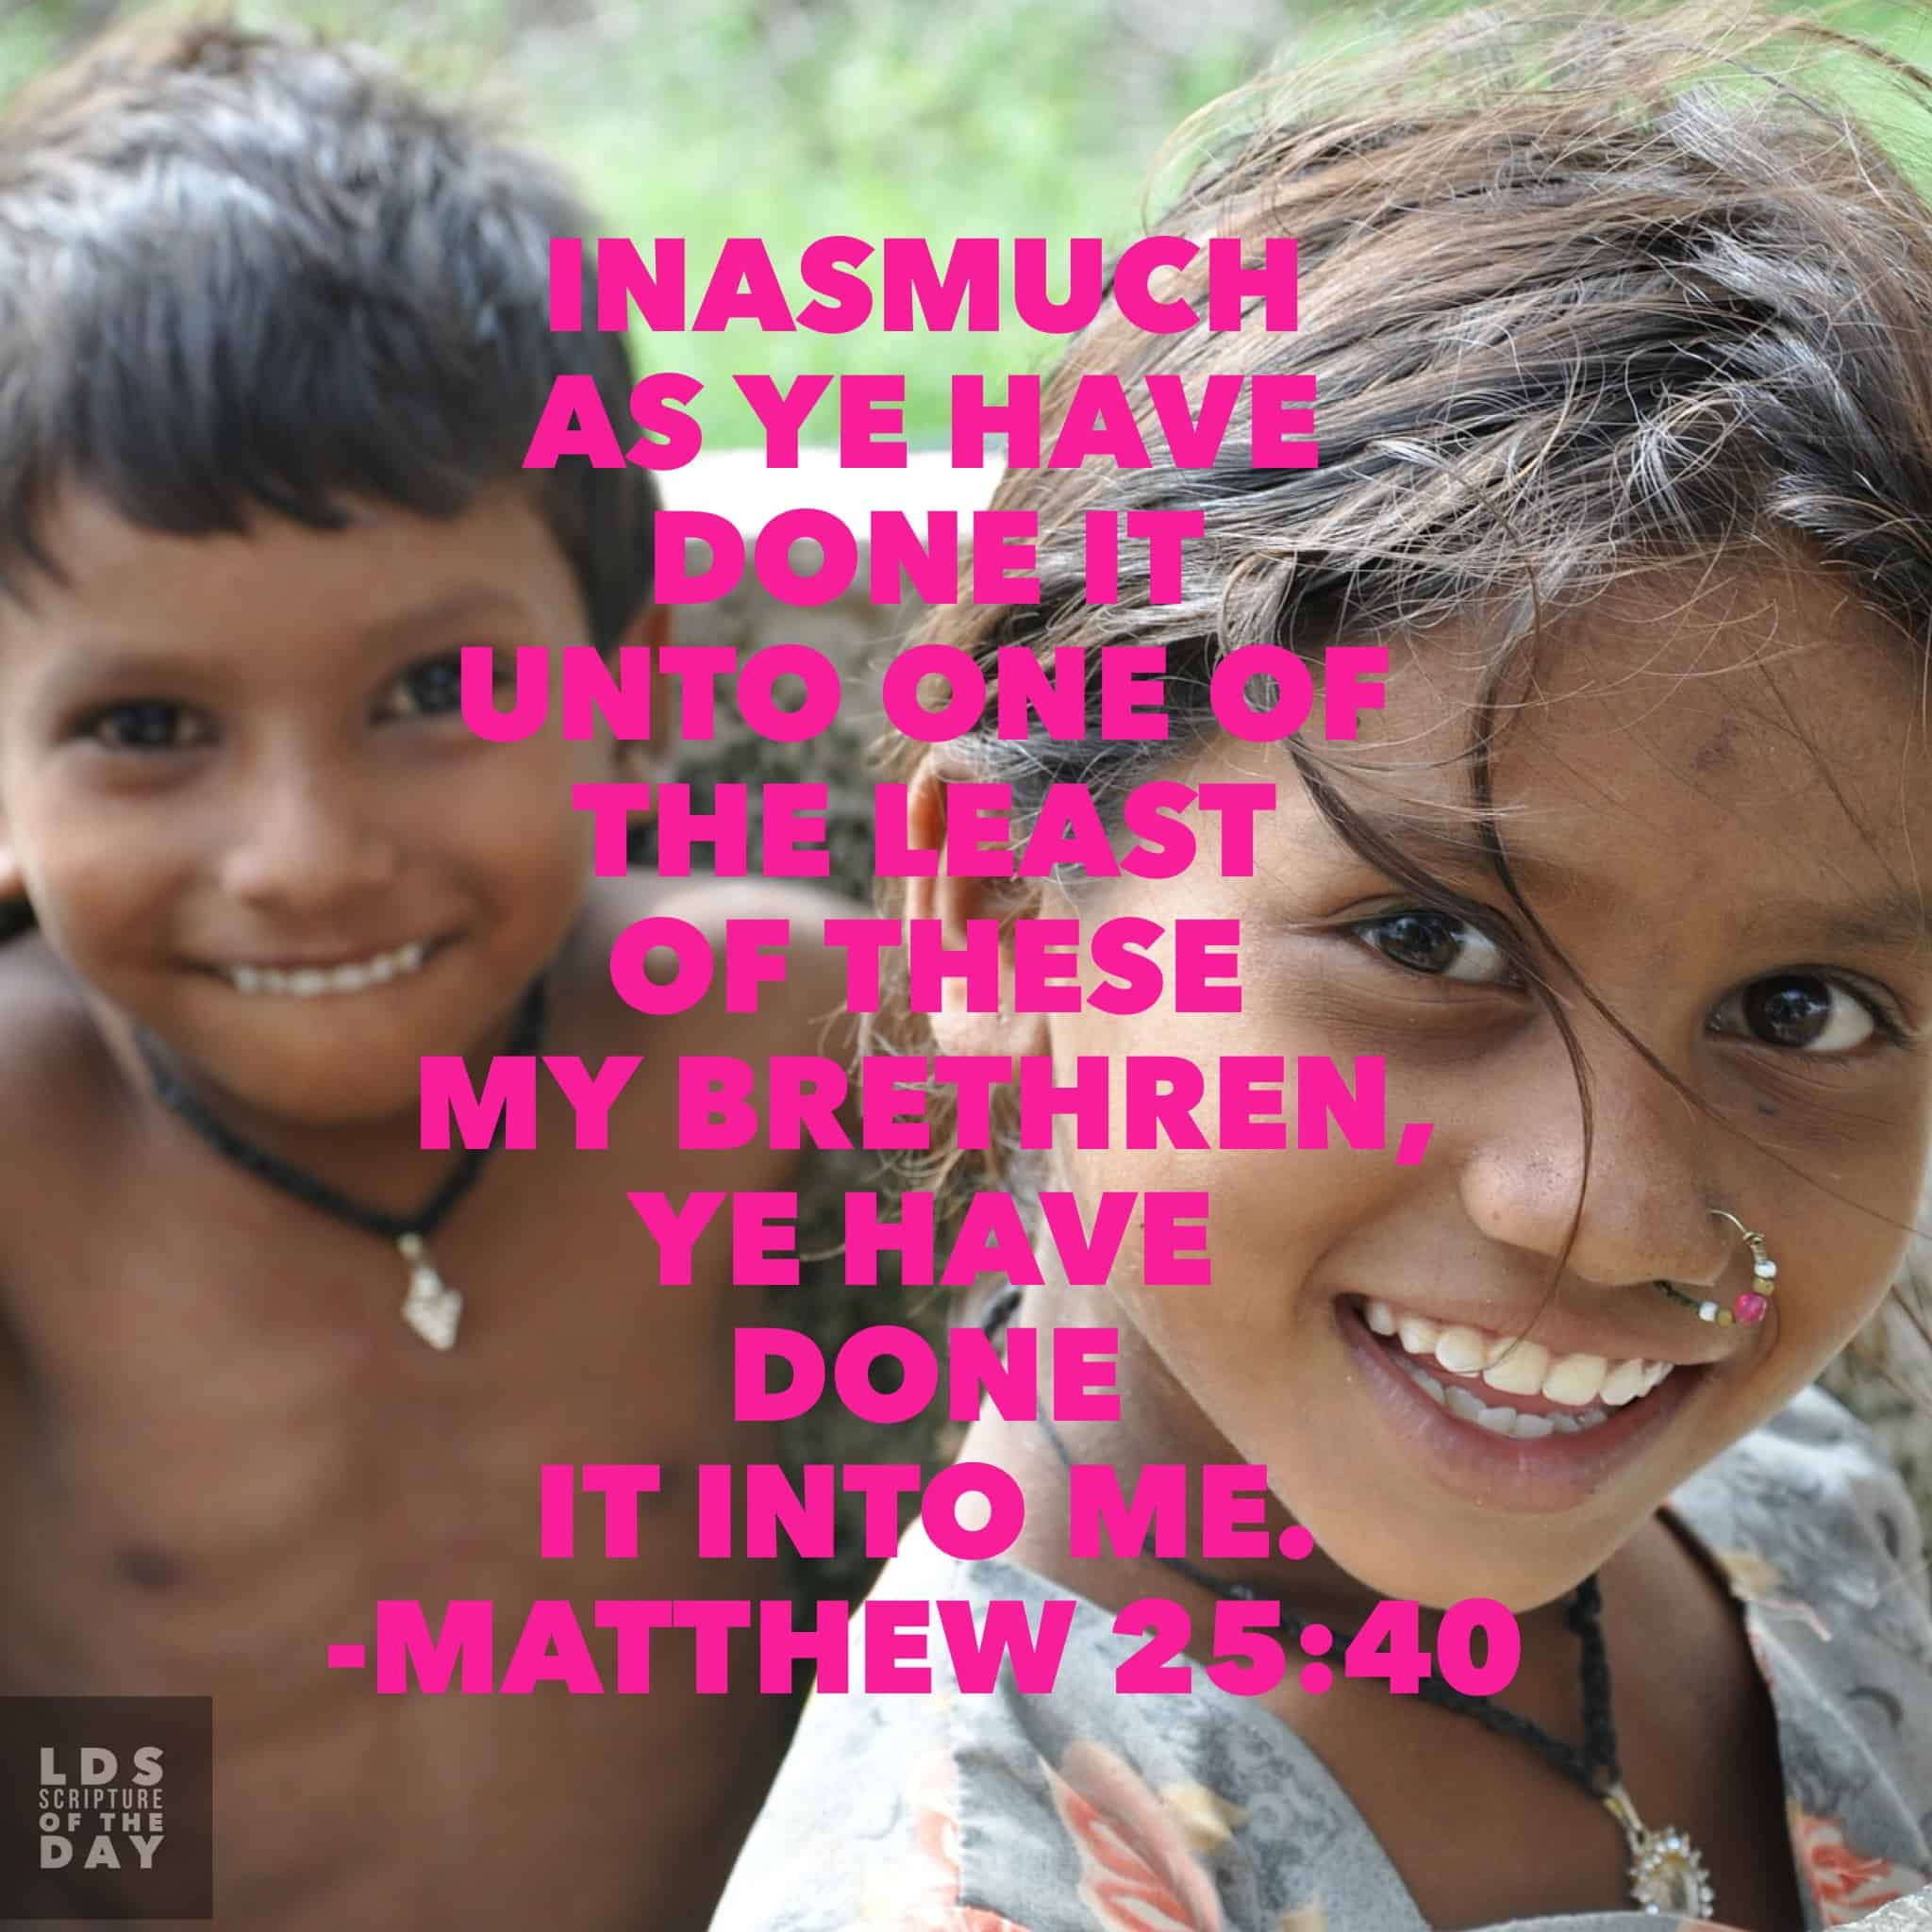 ...Inasmuch as ye have done it unto one of the least of these my brethren, ye have done it unto me. Matthew 25:40 Read in scriptures: http://bit.ly/1Wgn9tn